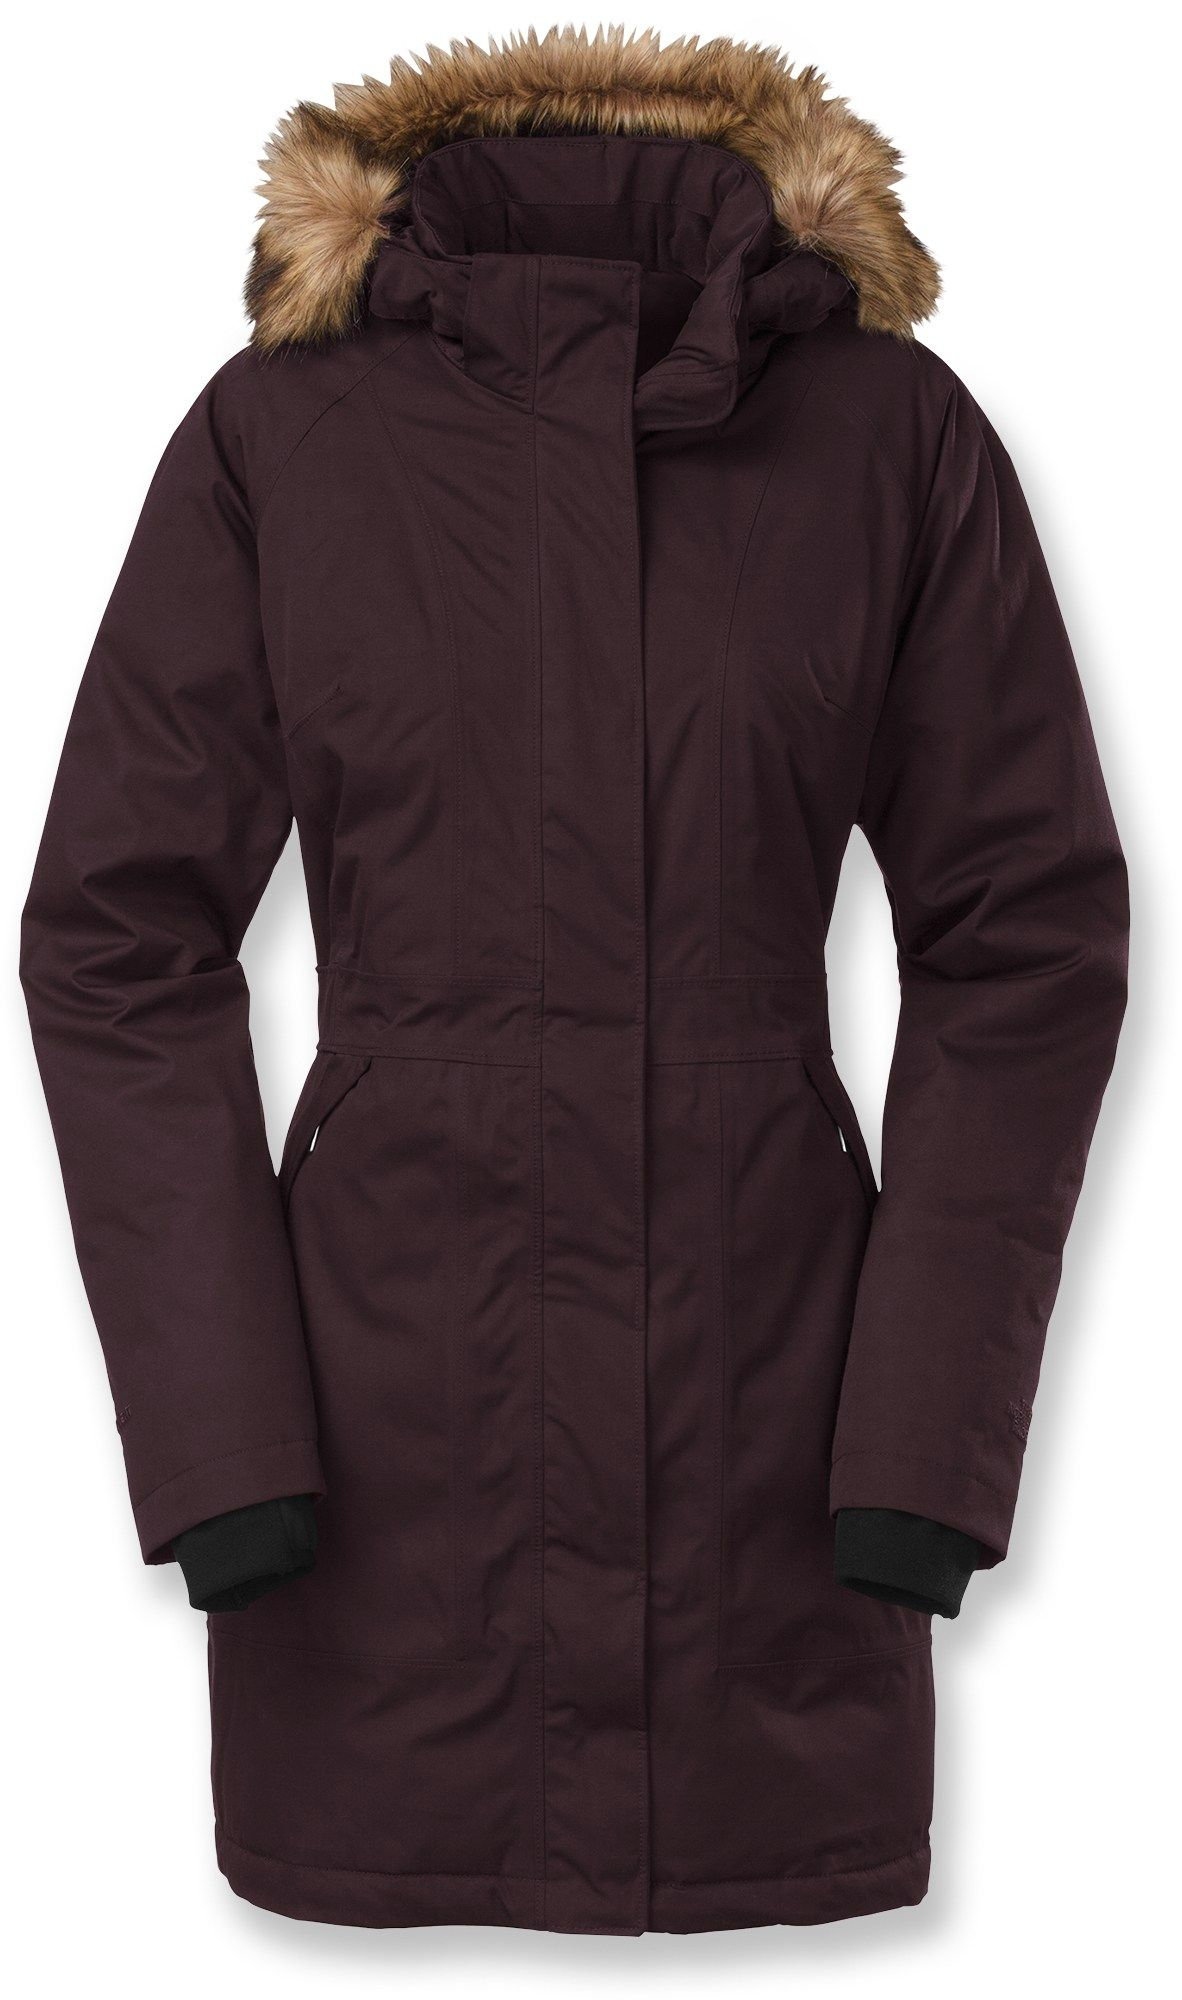 The north face womens winter coat